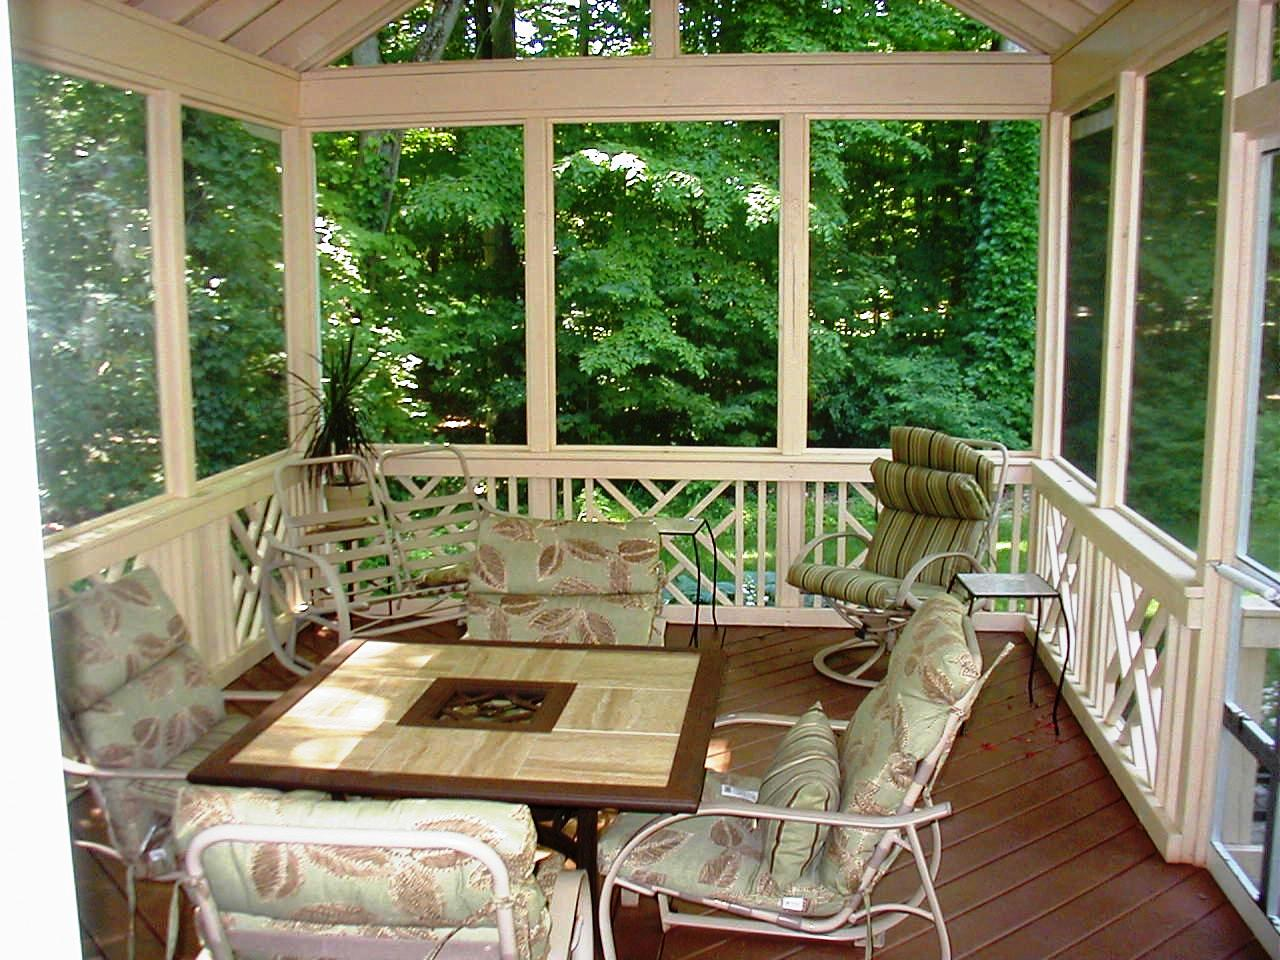 covered porch furniture. This Columbus, OH Screened Porch Shows The Use Of A Decorative Divider Rail And Post Covered Furniture V